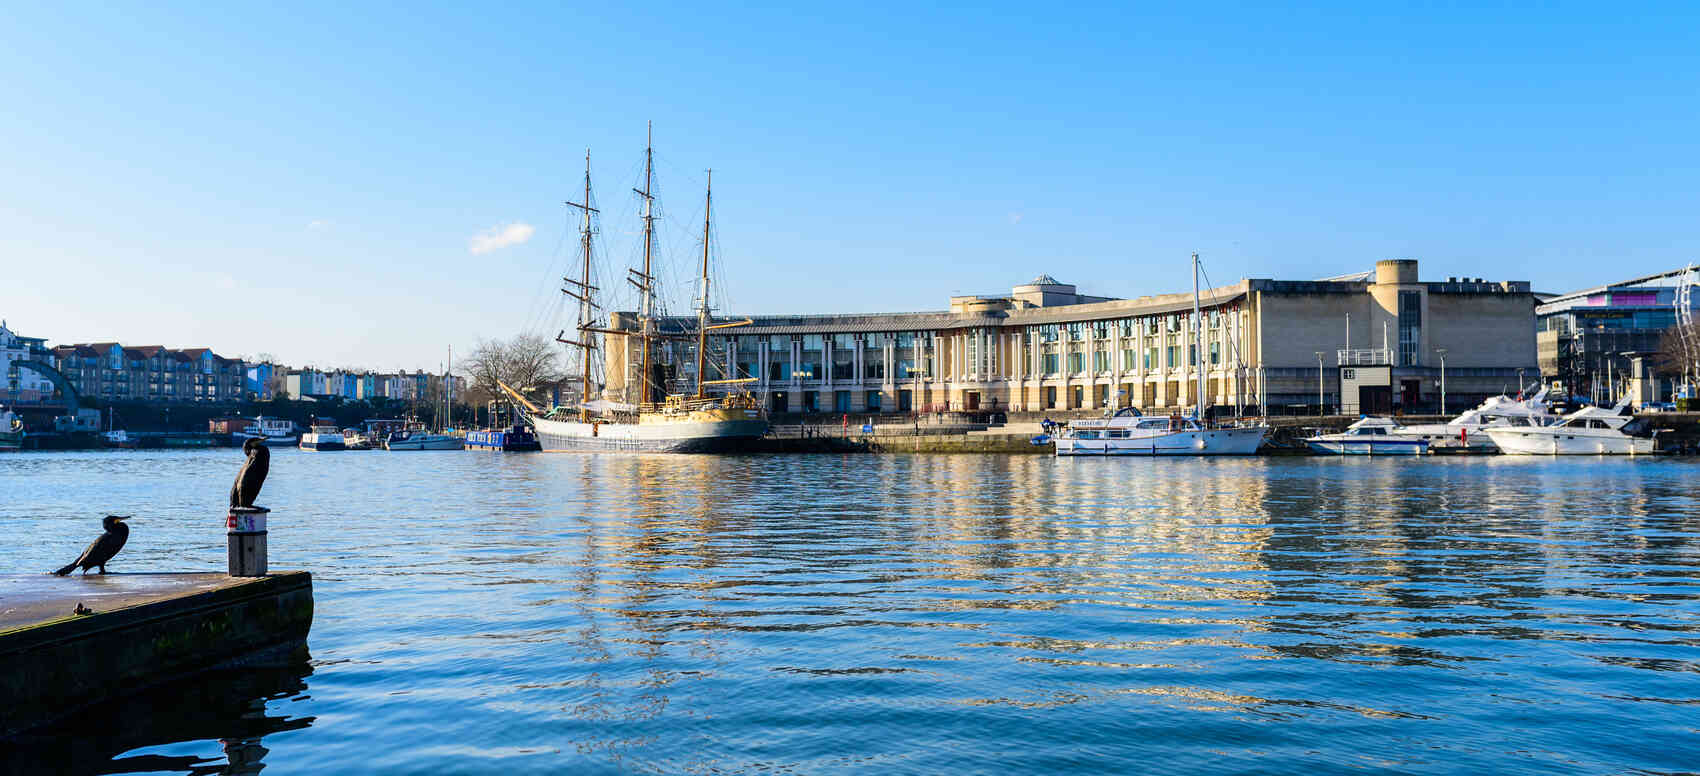 Bristol harbourside showing the buildings ships and water birds